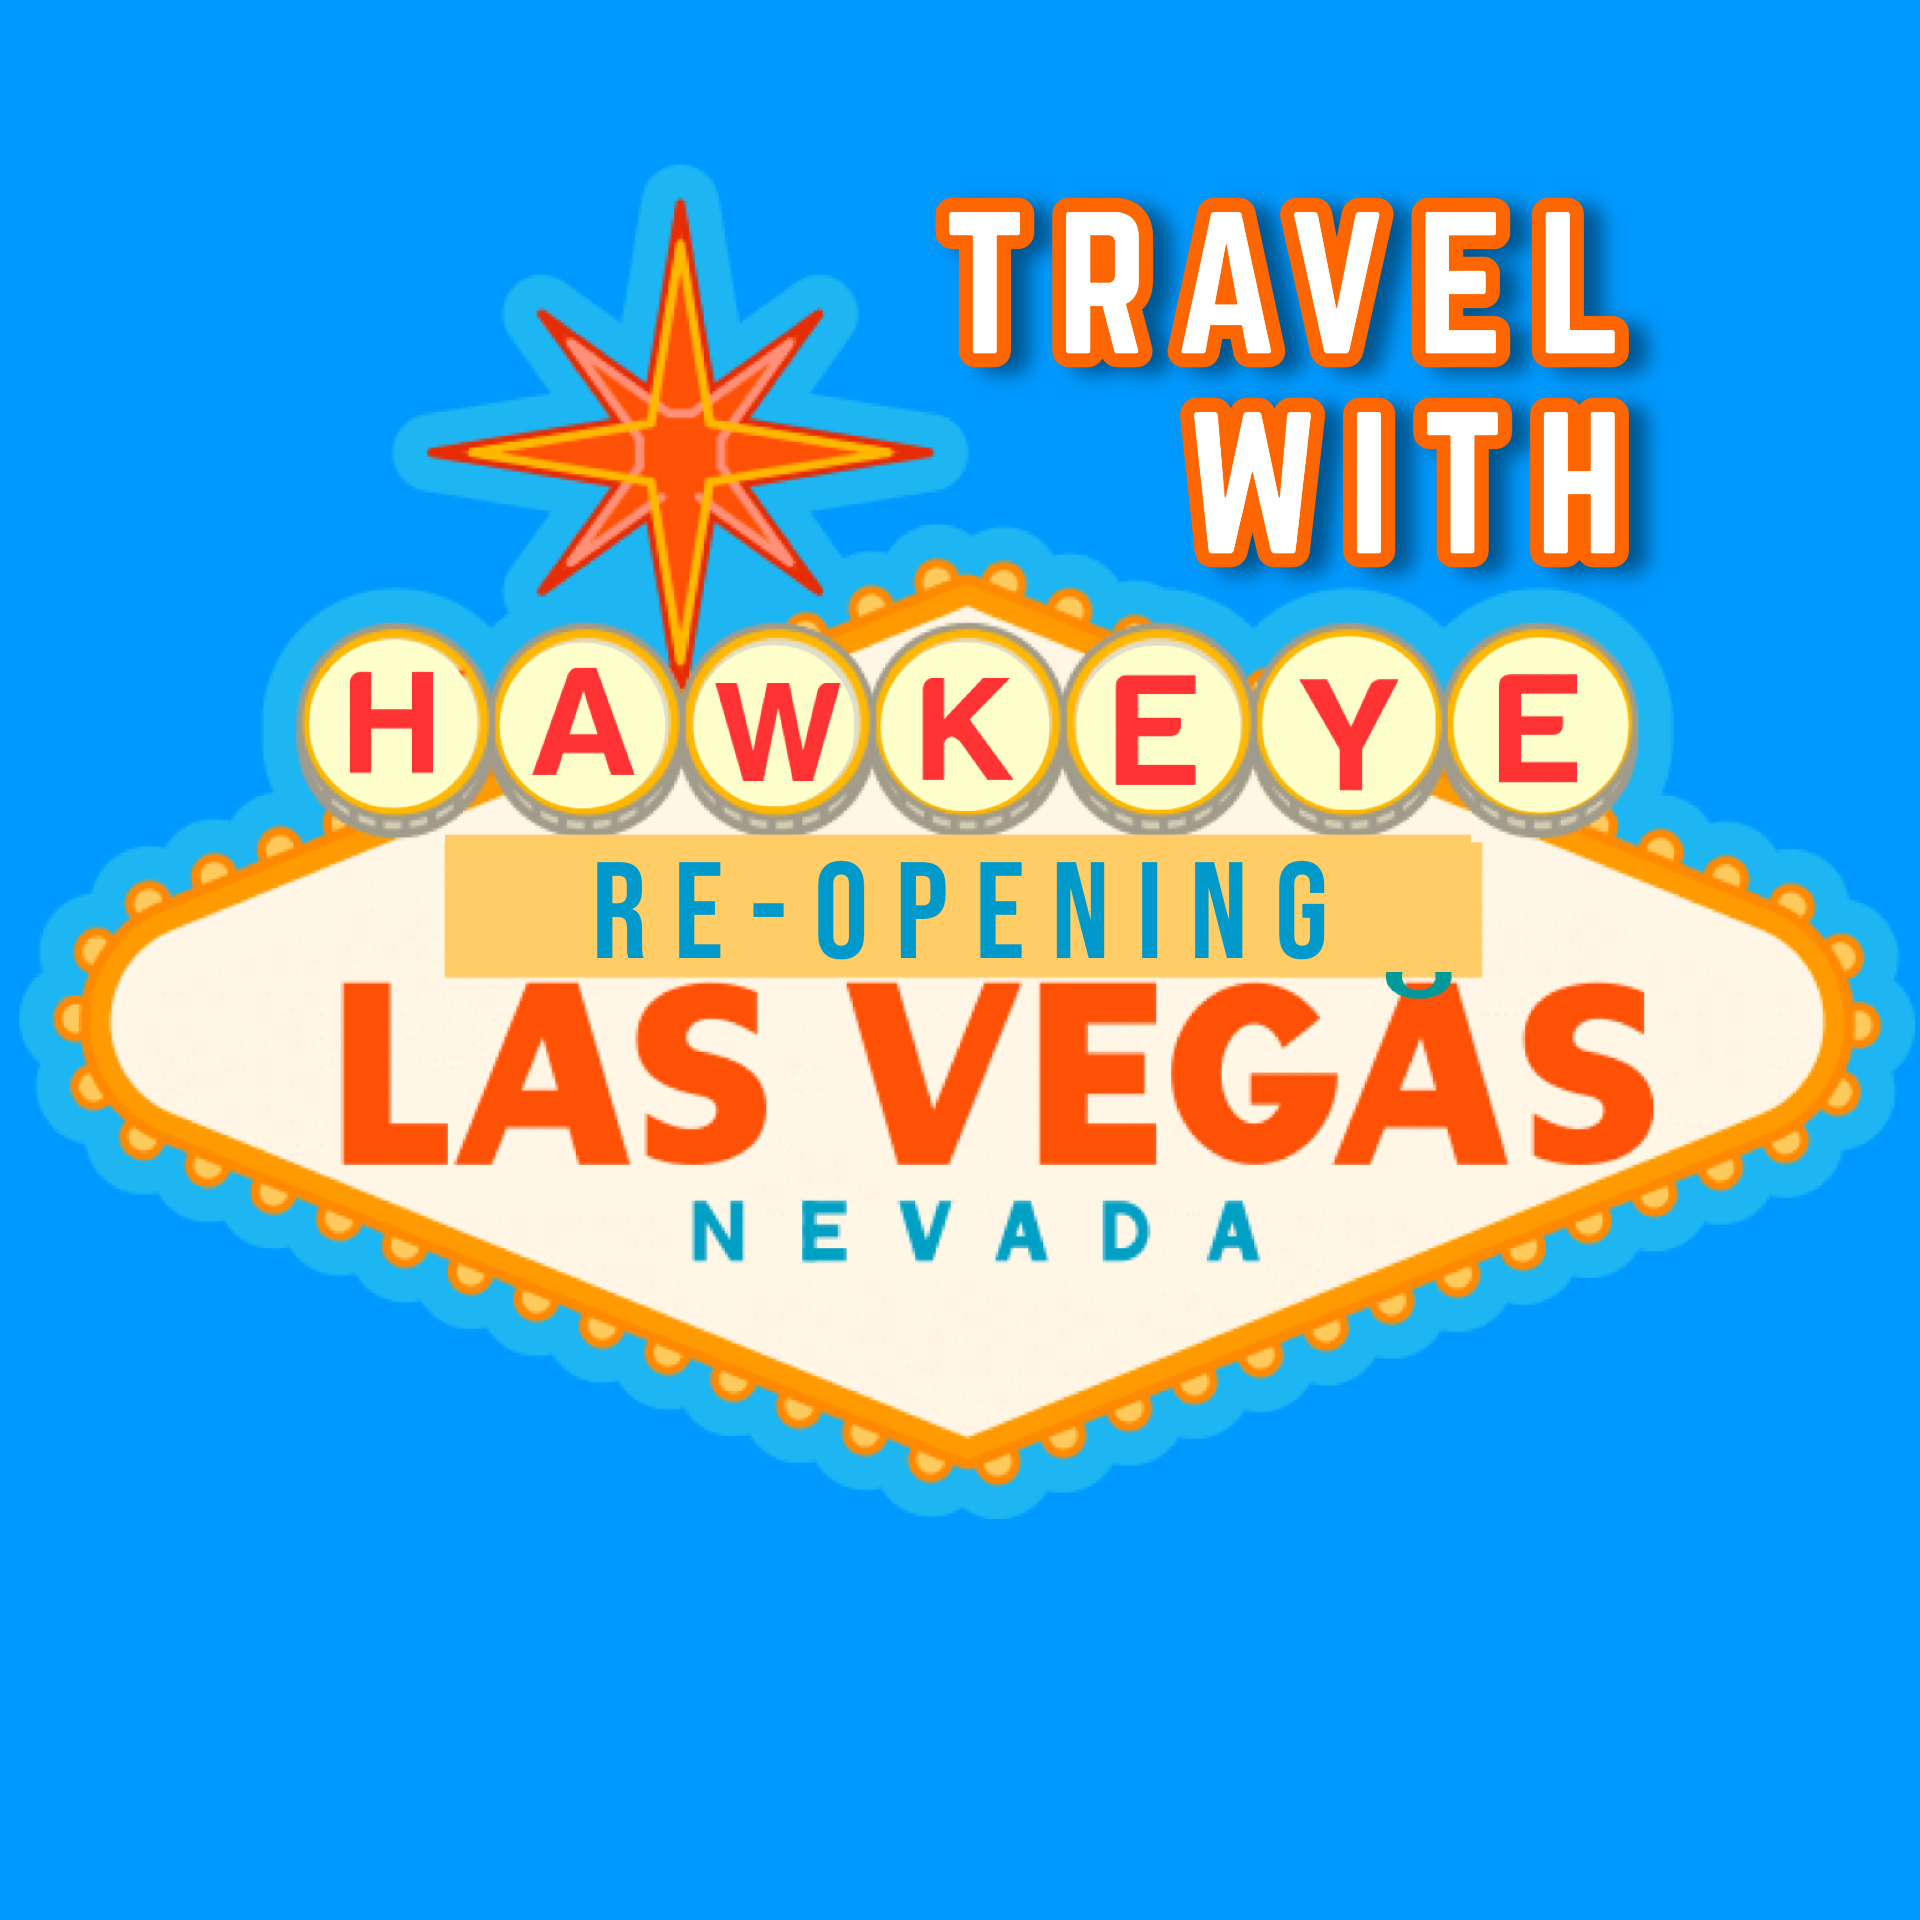 Las Vegas is 100% Open – Find out more on the Travel With Hawkeye podcast